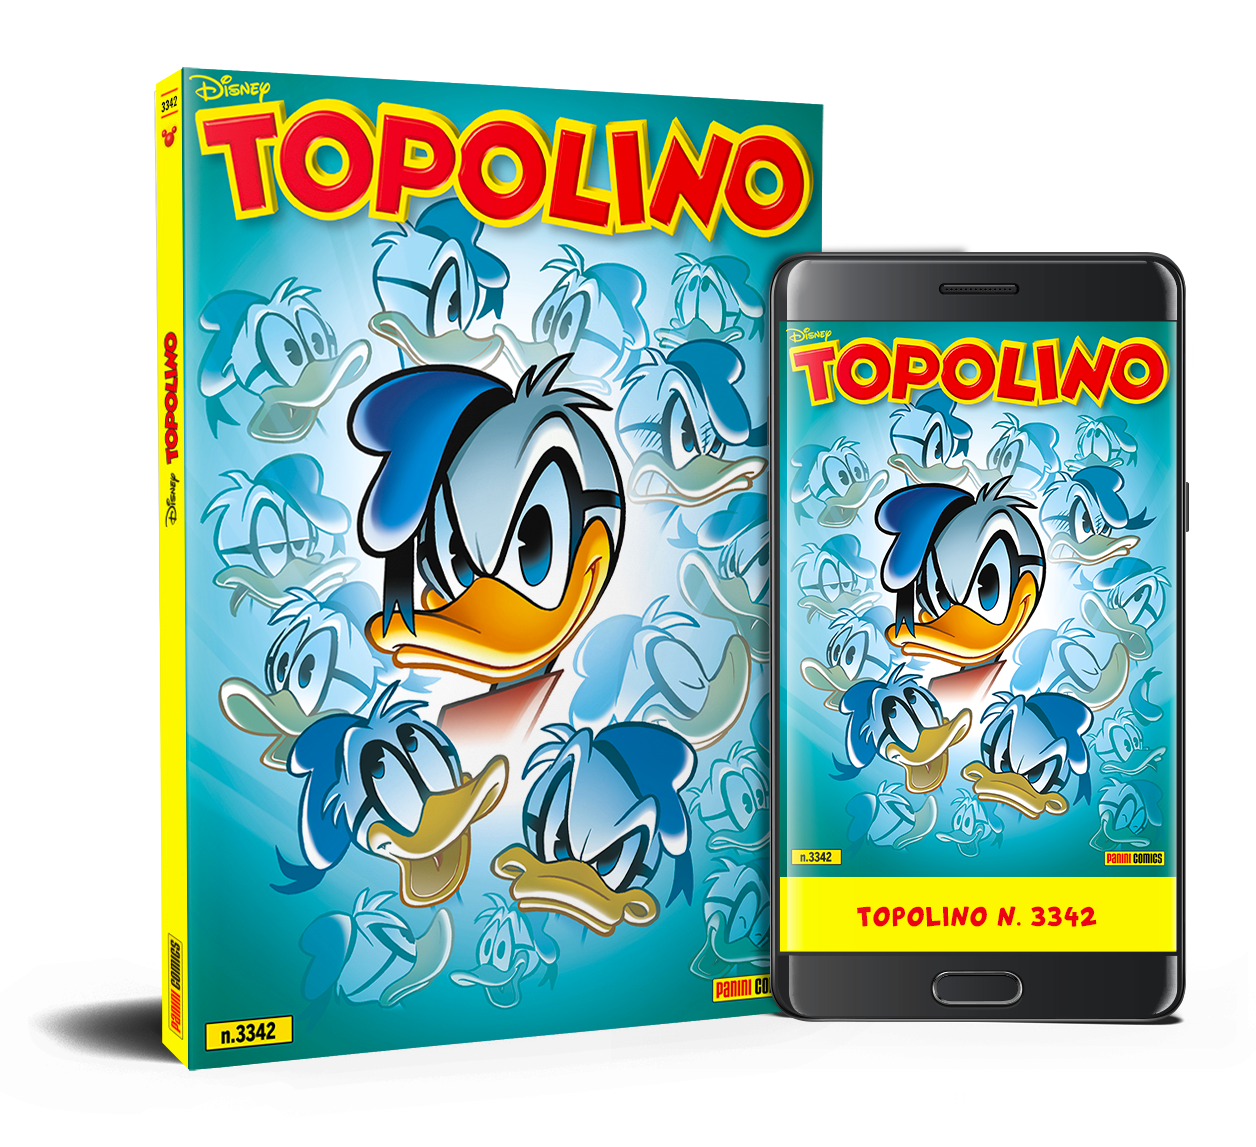 https://www.topolino.it/wp-content/uploads/2019/12/3342_cover1-2.png